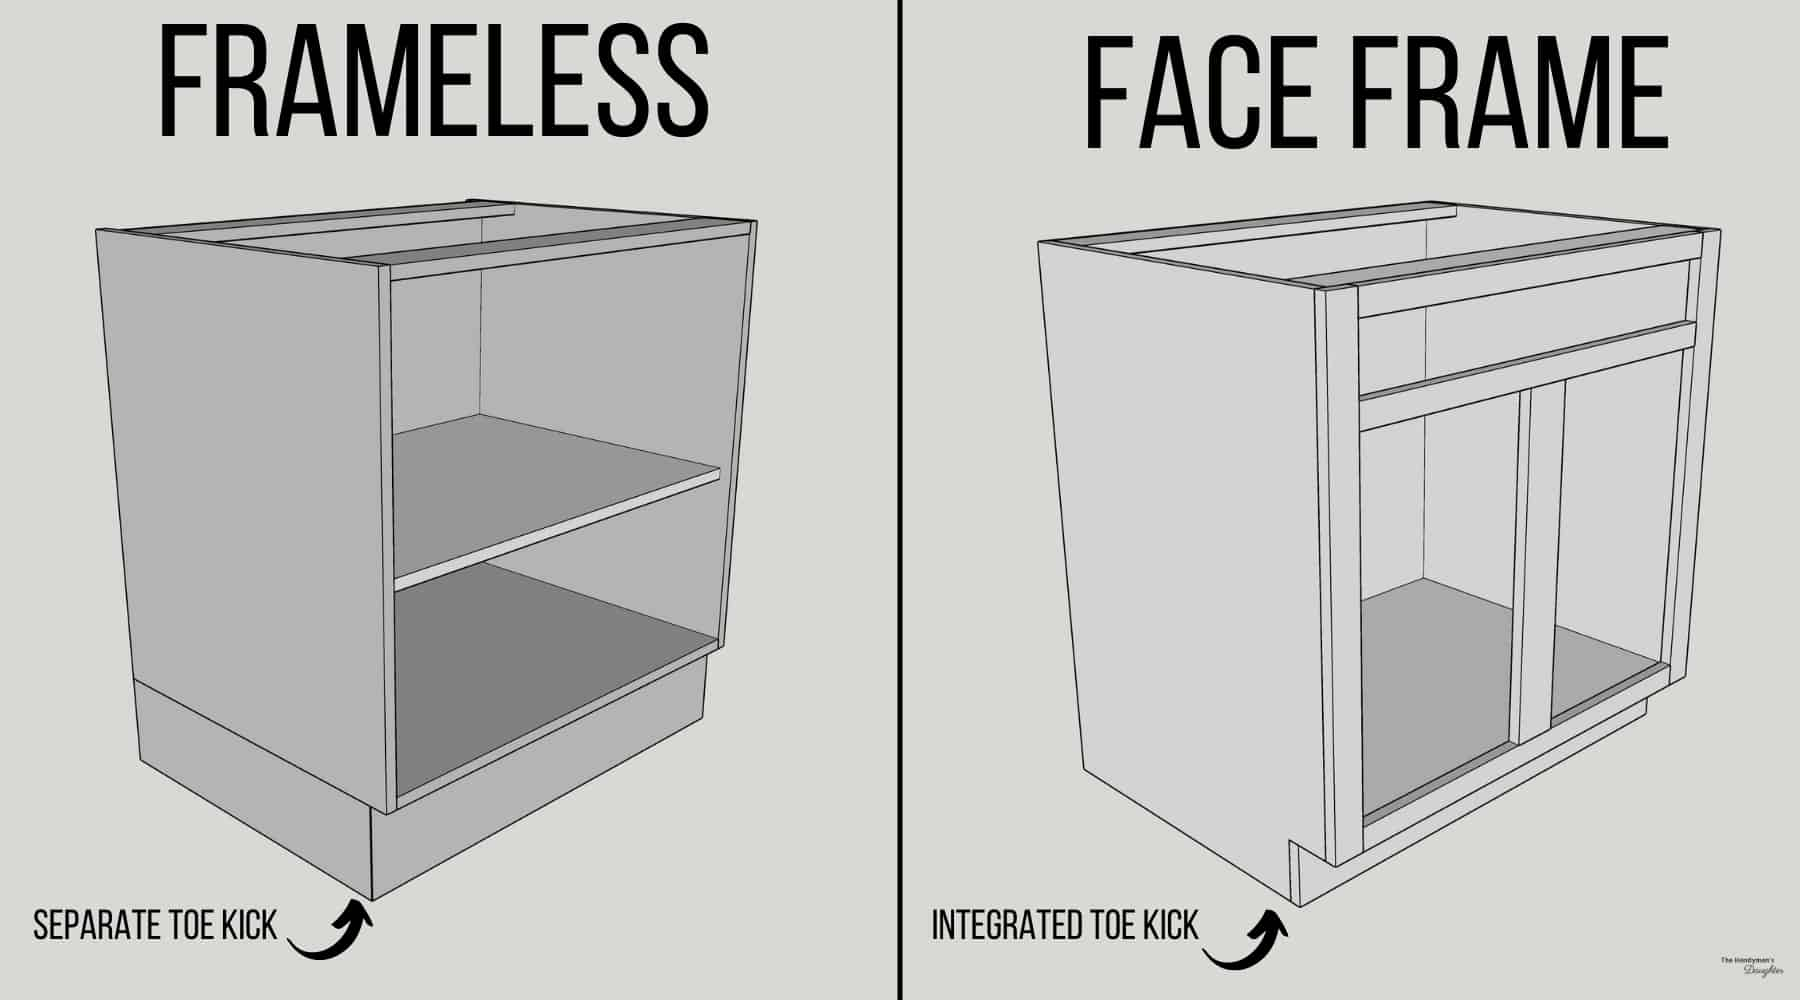 frameless vs face frame cabinets diagram comparing both styles